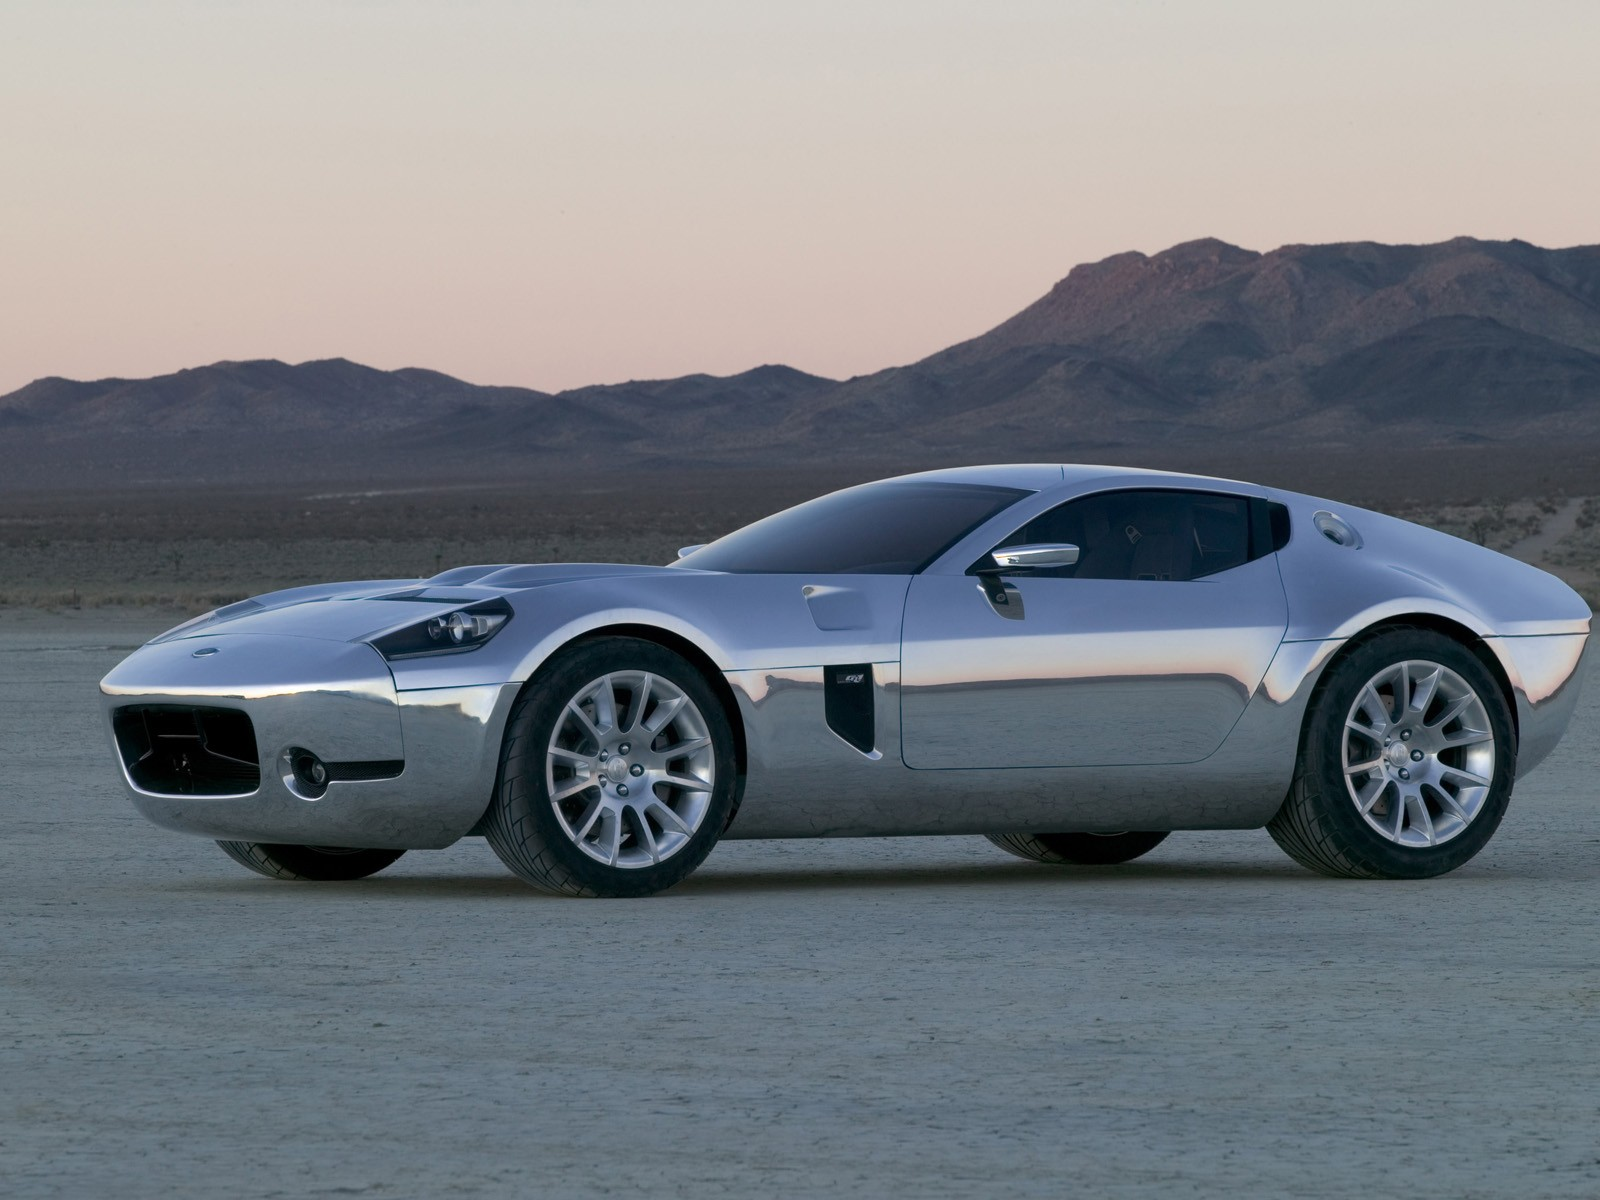 2004 Ford Shelby GR1 Concept photo - 2